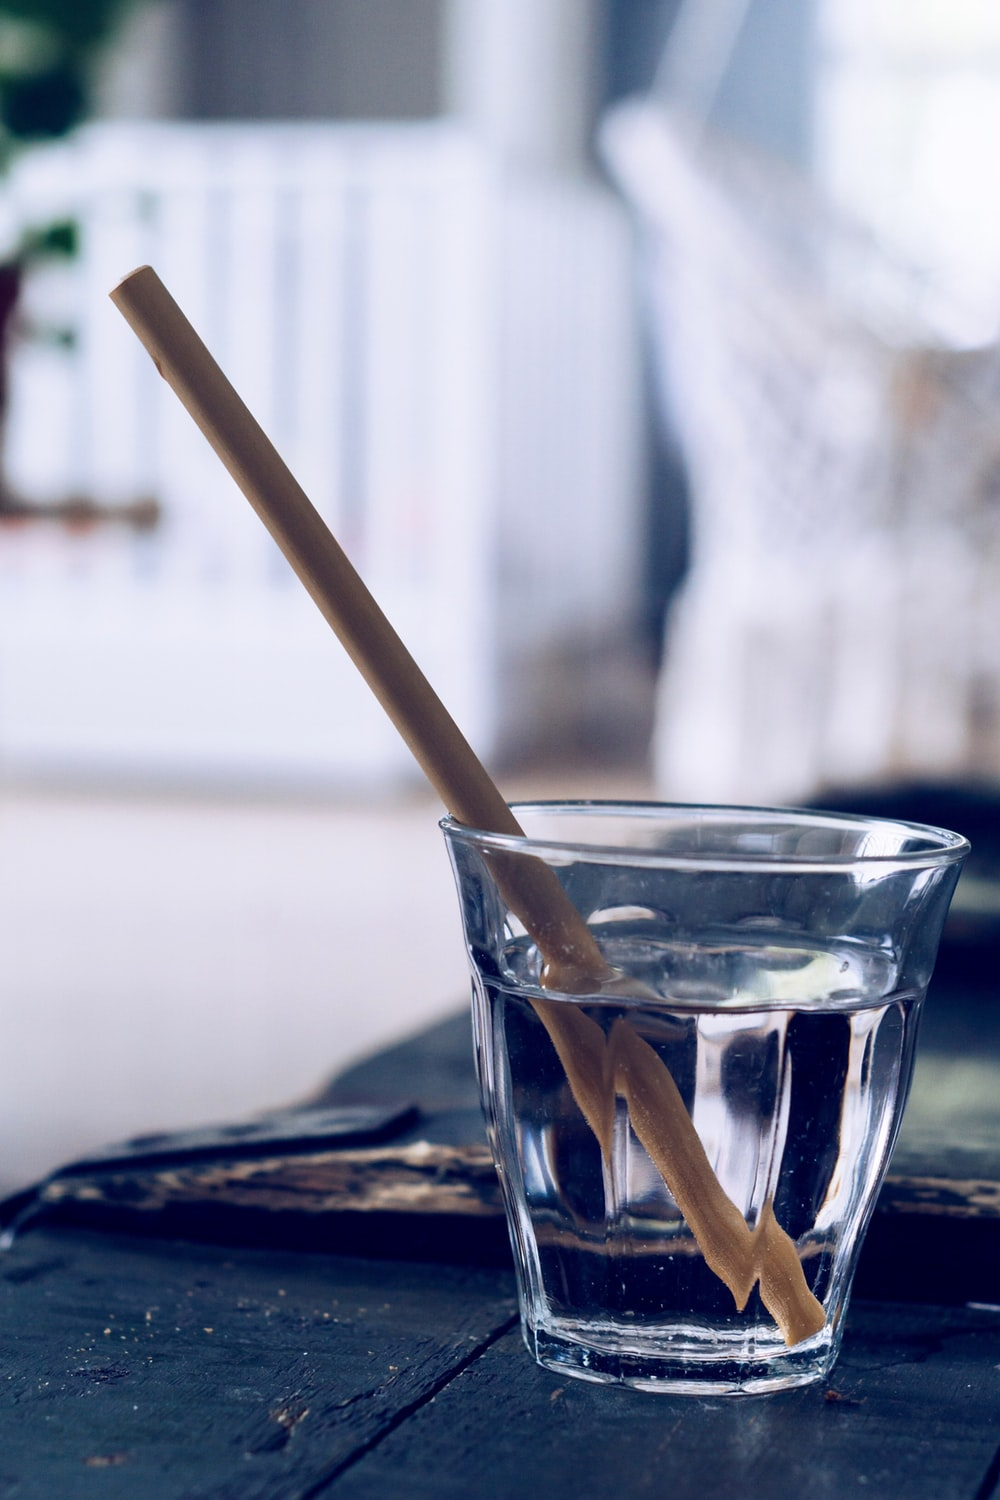 clear drinking glass with brown straw